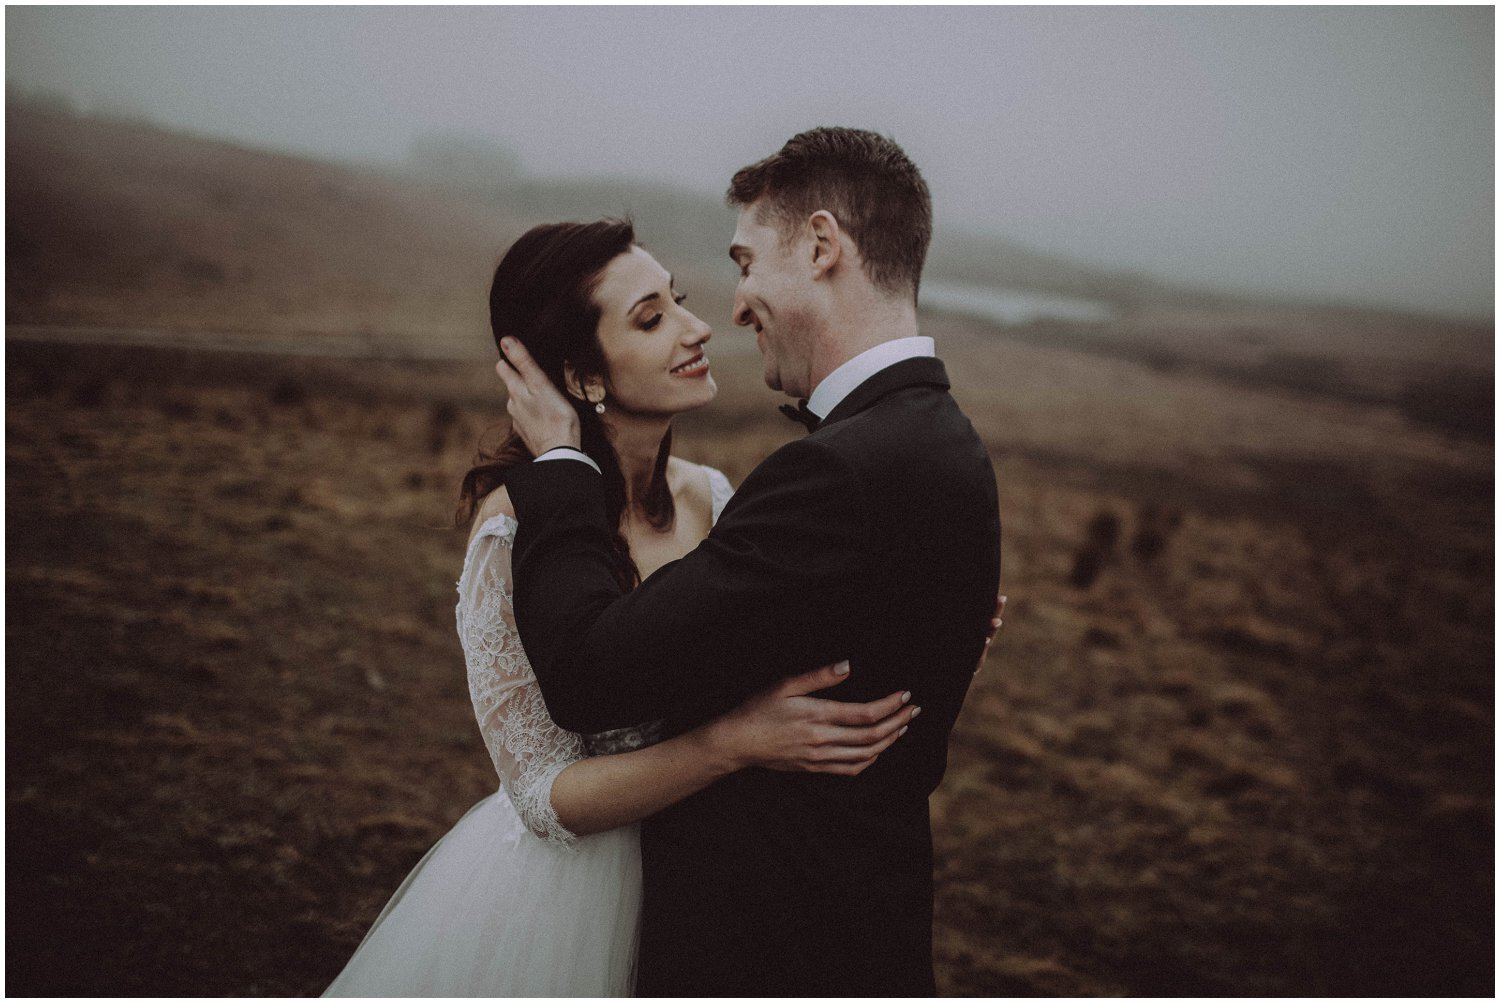 Top Wedding Photographer Cape Town South Africa Artistic Creative Documentary Wedding Photography Rue Kruger_1367.jpg